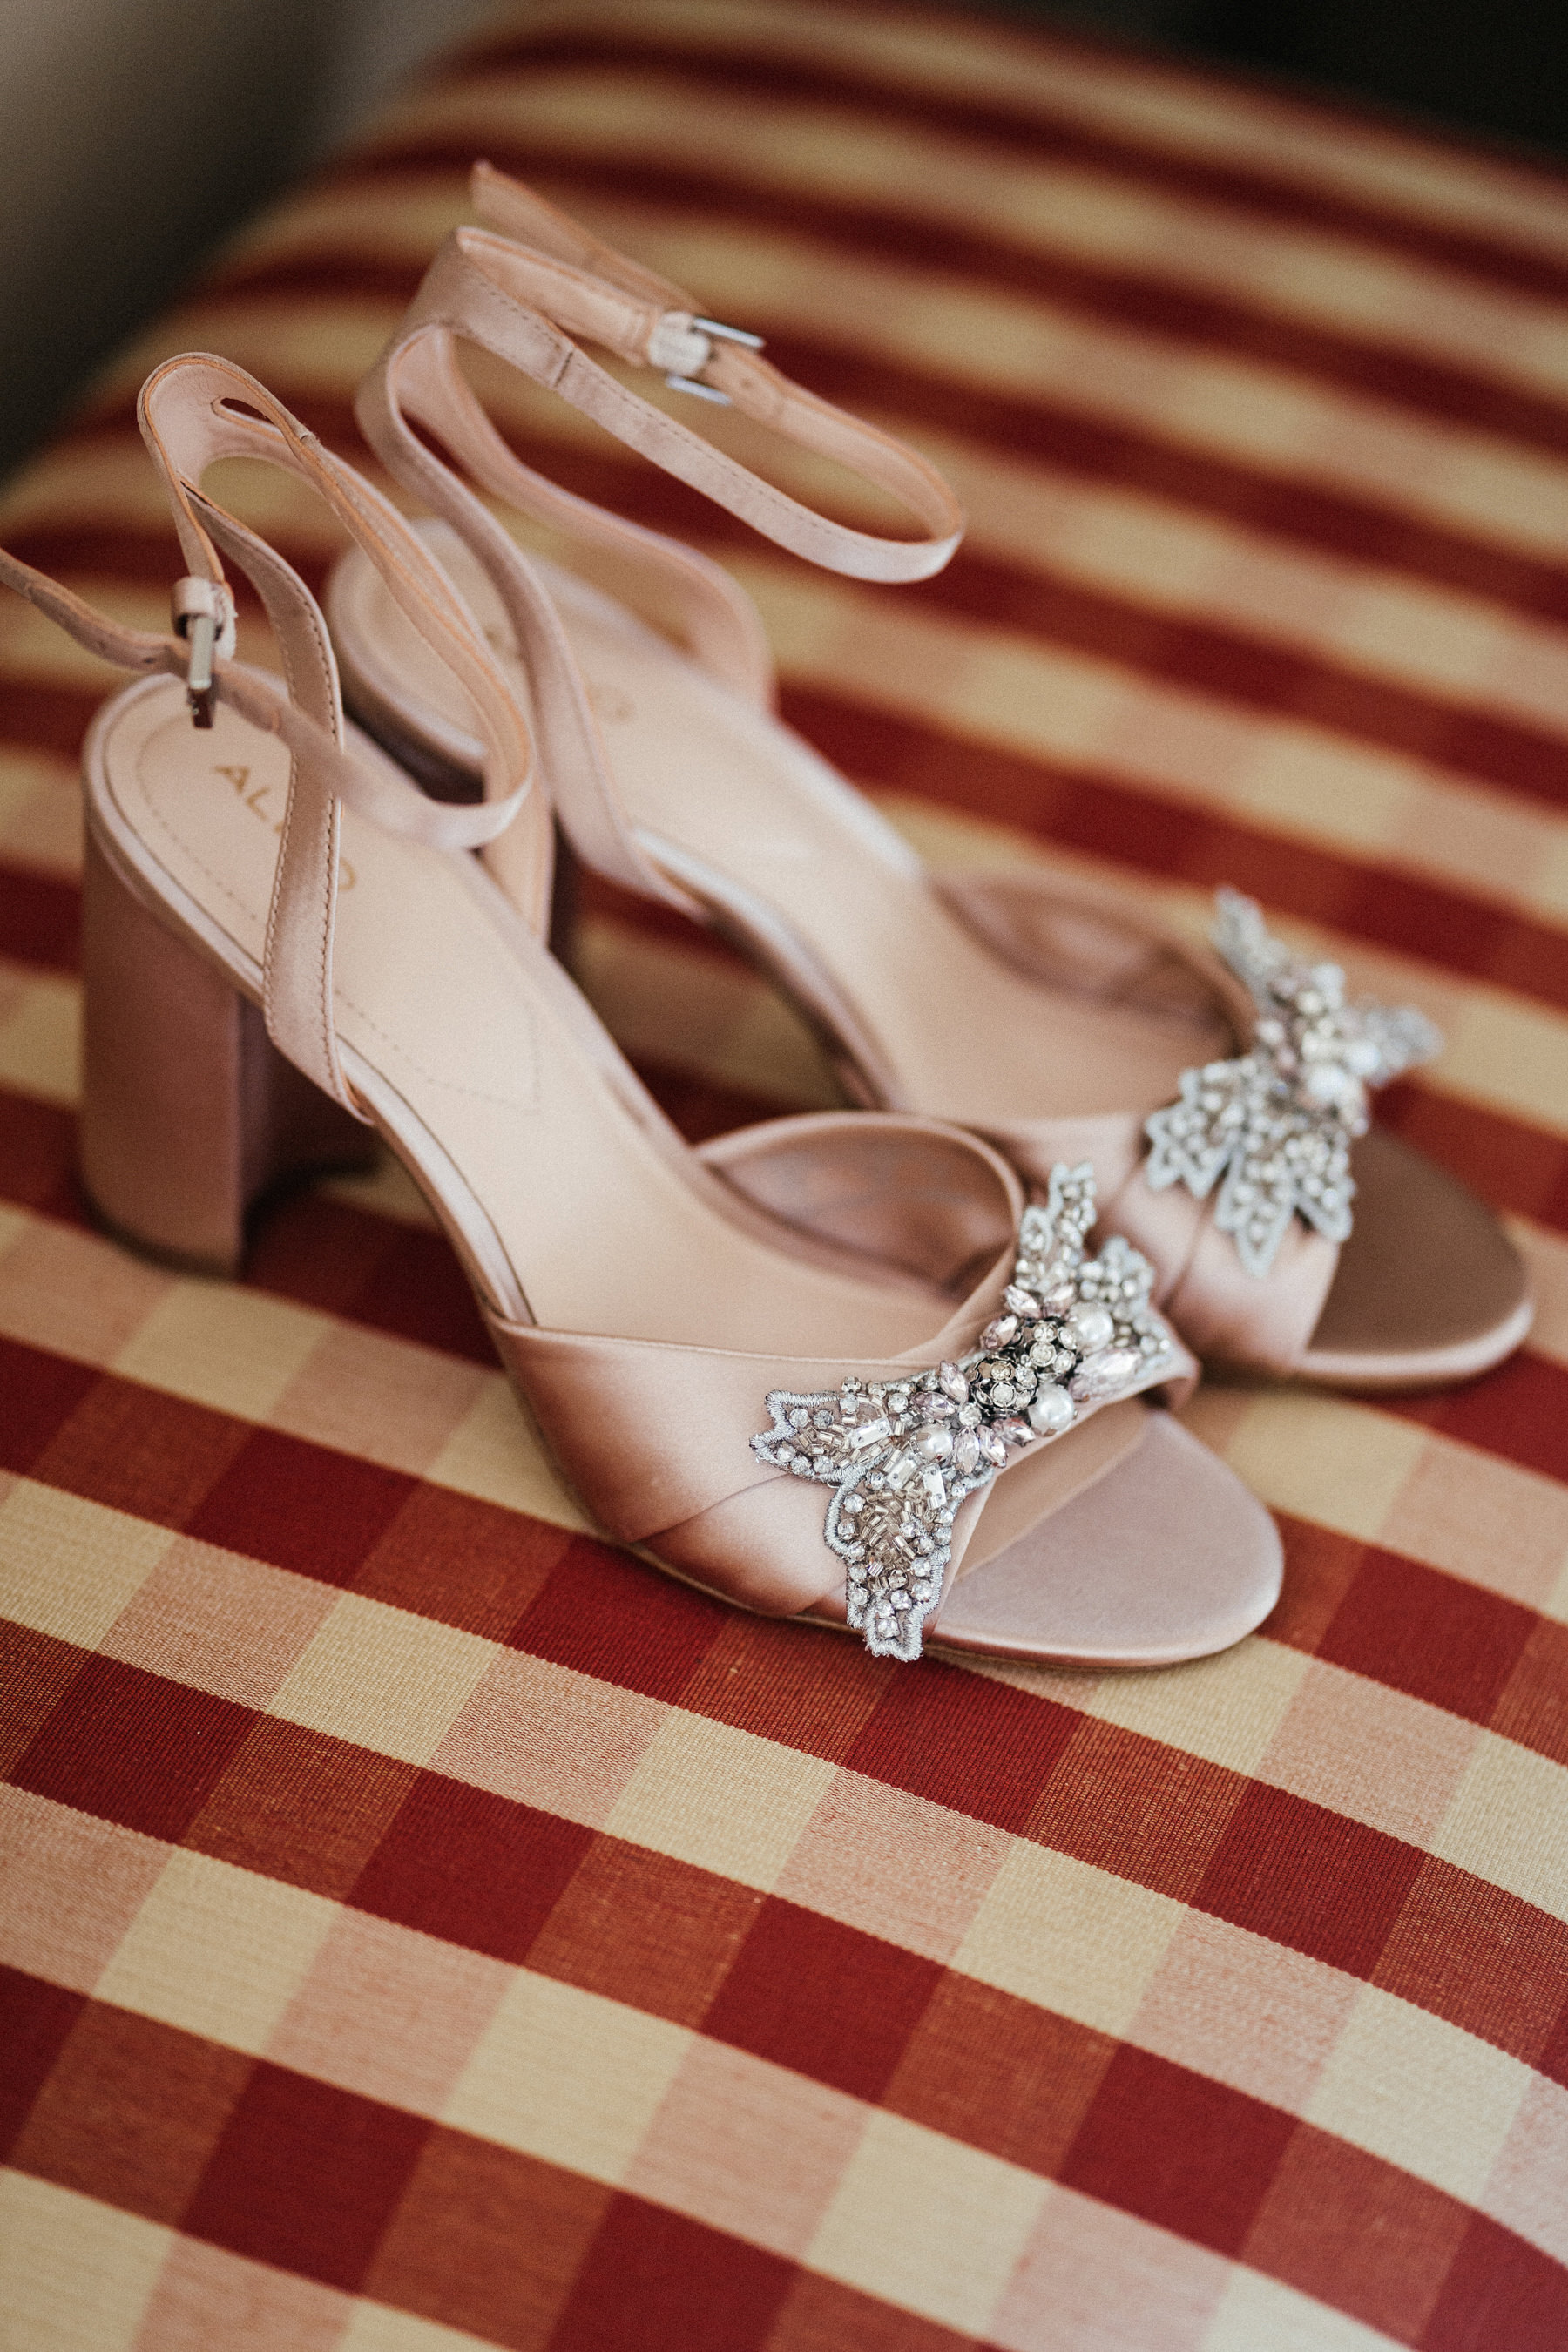 Cloughjordan House Wedding Photography-bridal shoes